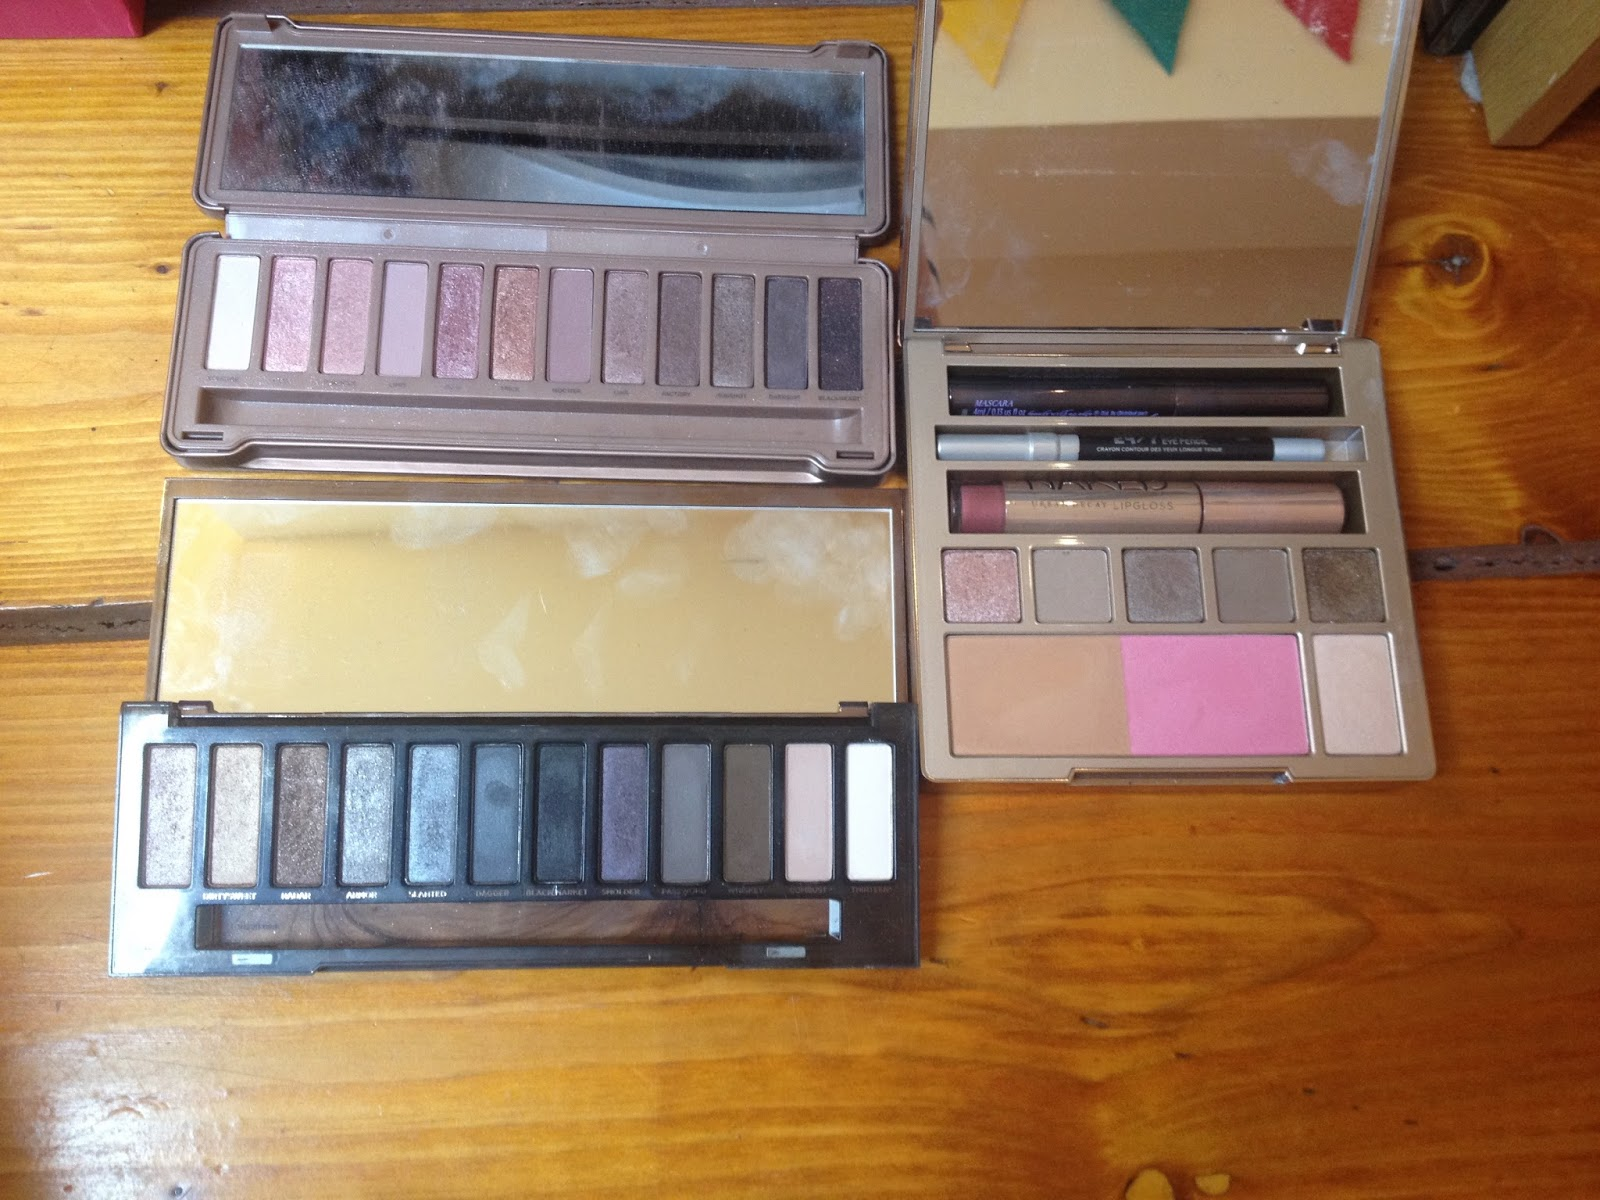 Top Row: Benefit Big Beautiful Eyes, Nix Smokey Look Kit, MUA Pretty Edgy Eyeshadow  Palette